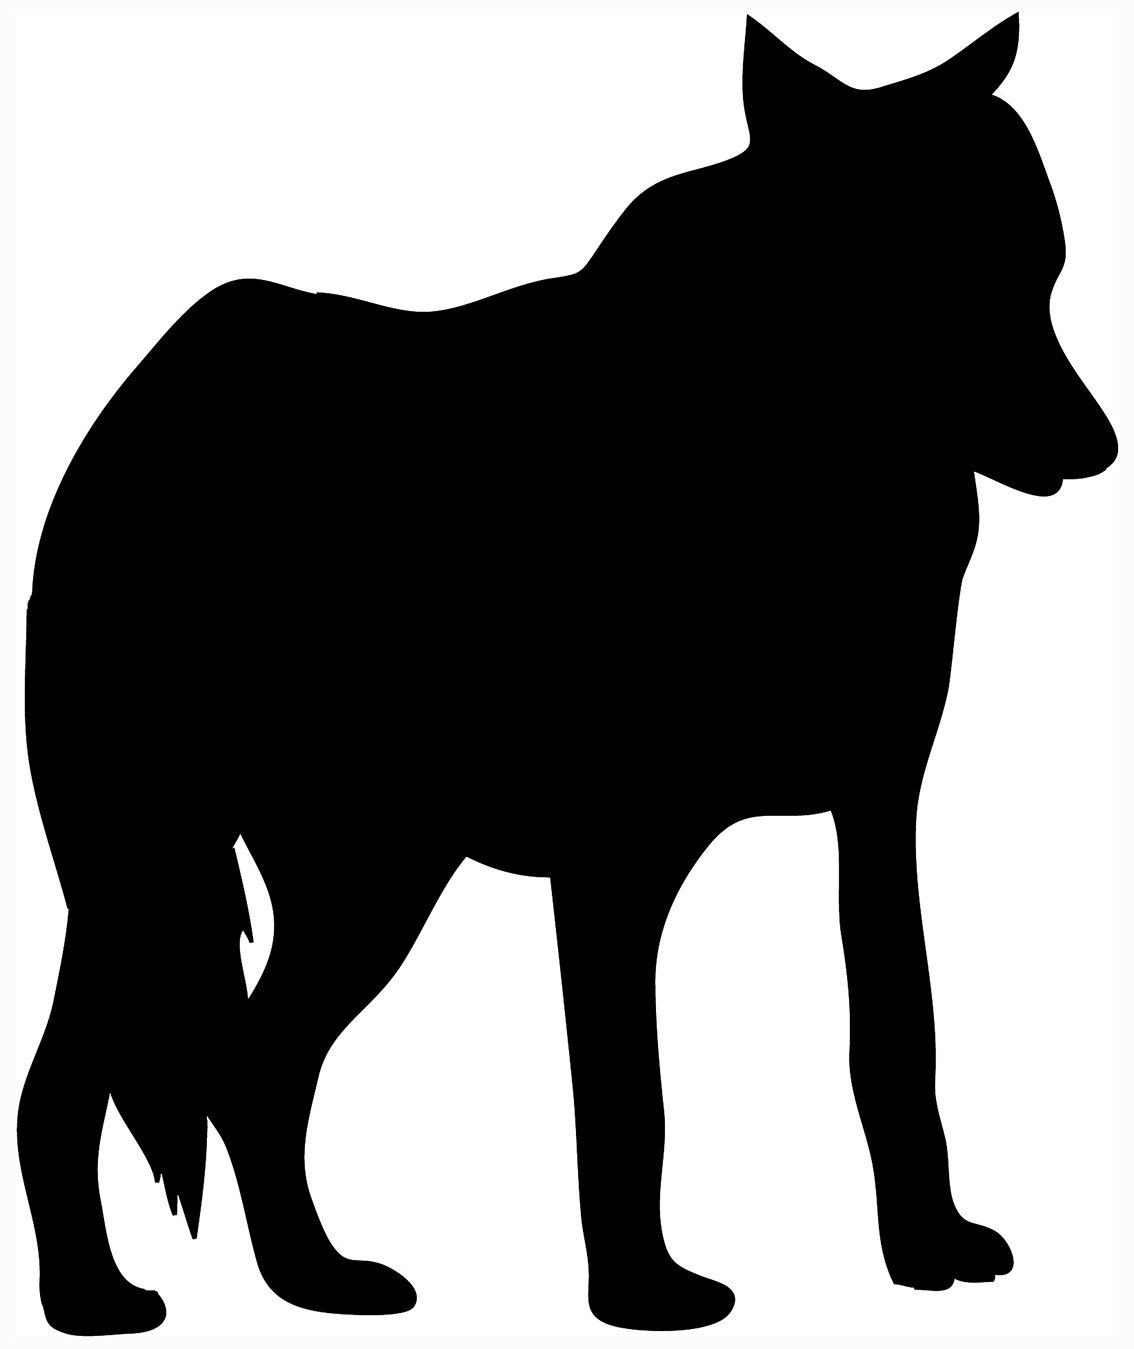 1134x1349 Wolf Head Profile Silhouette Images Pictures